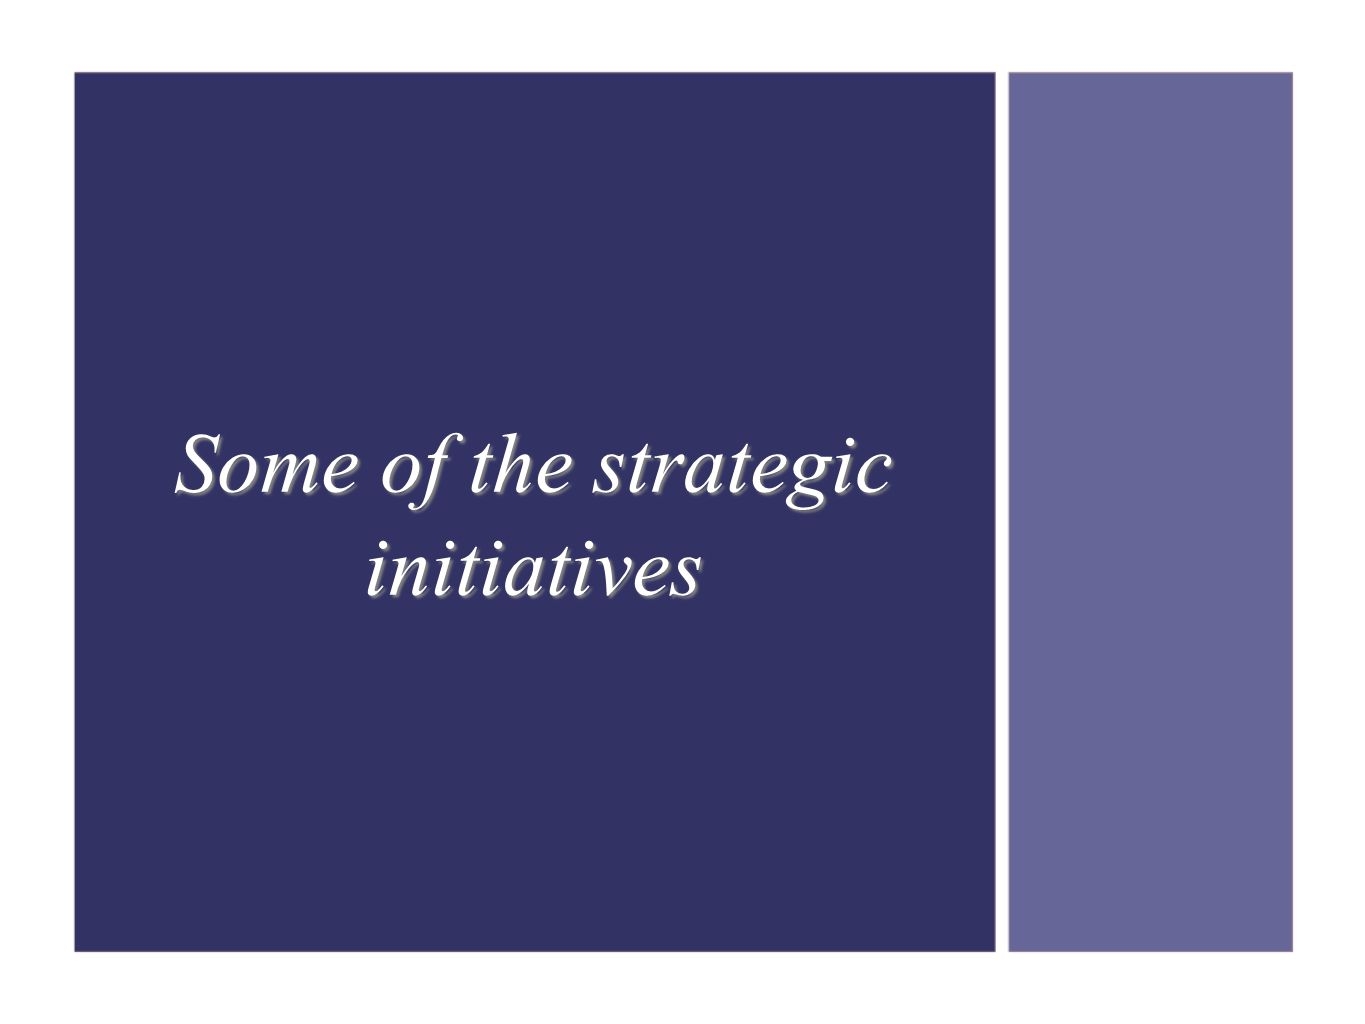 Some of the strategic initiatives